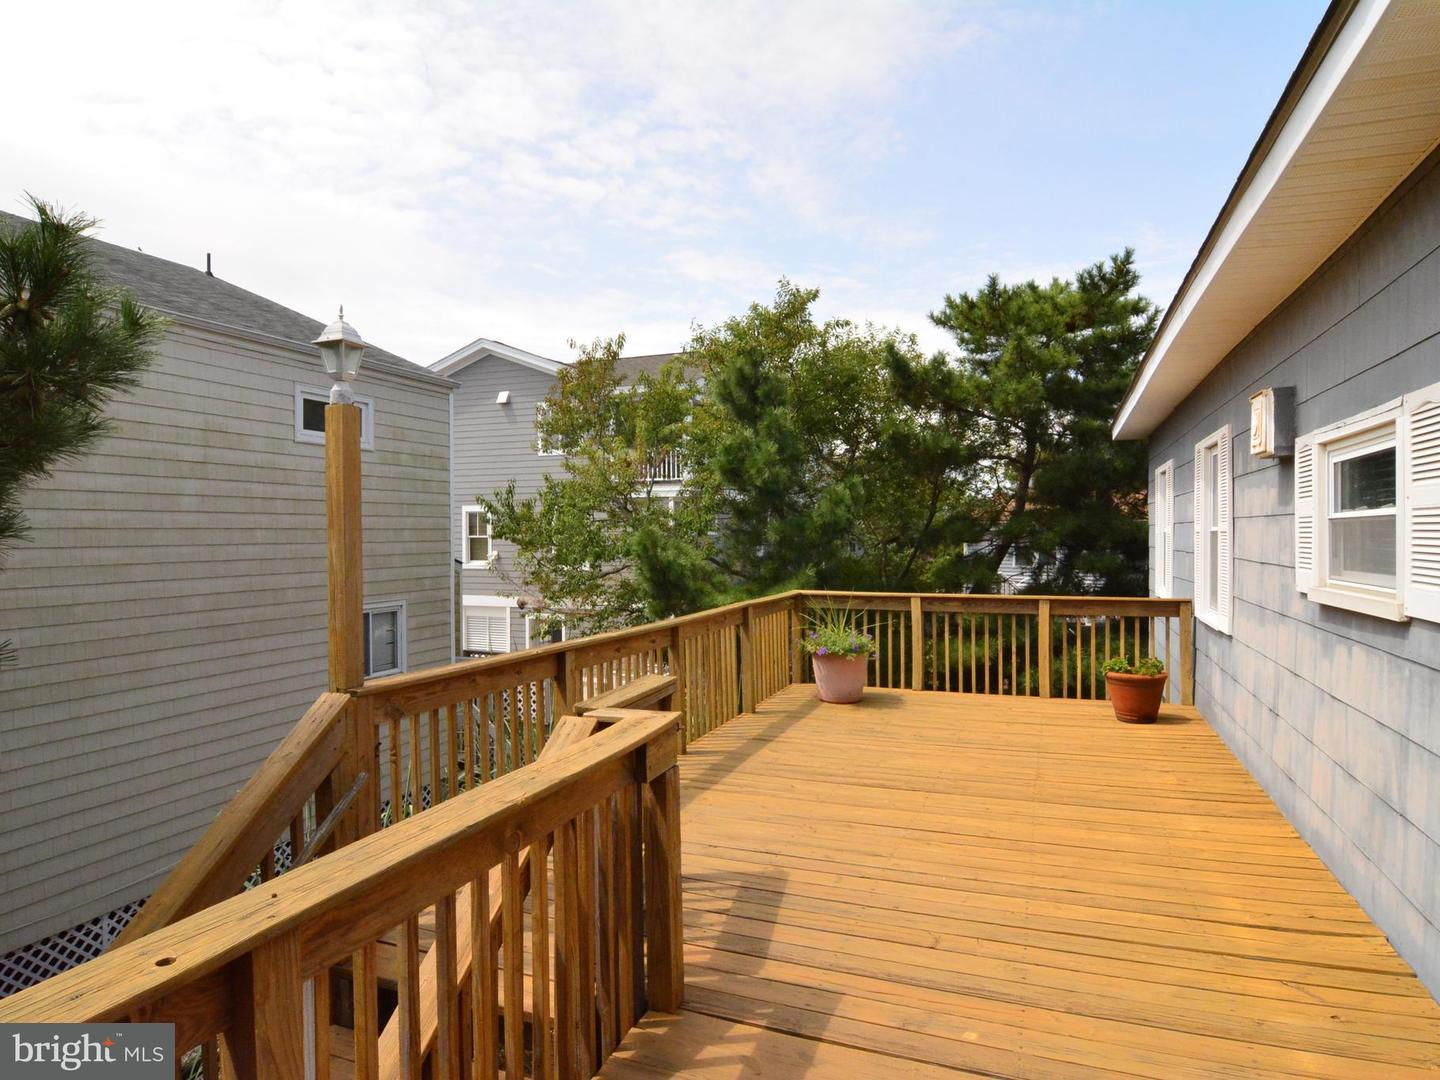 1002299338-300501703093-2018-08-30-10-08-41 4 S 4th St | South Bethany, DE Real Estate For Sale | MLS# 1002299338  - 1st Choice Properties